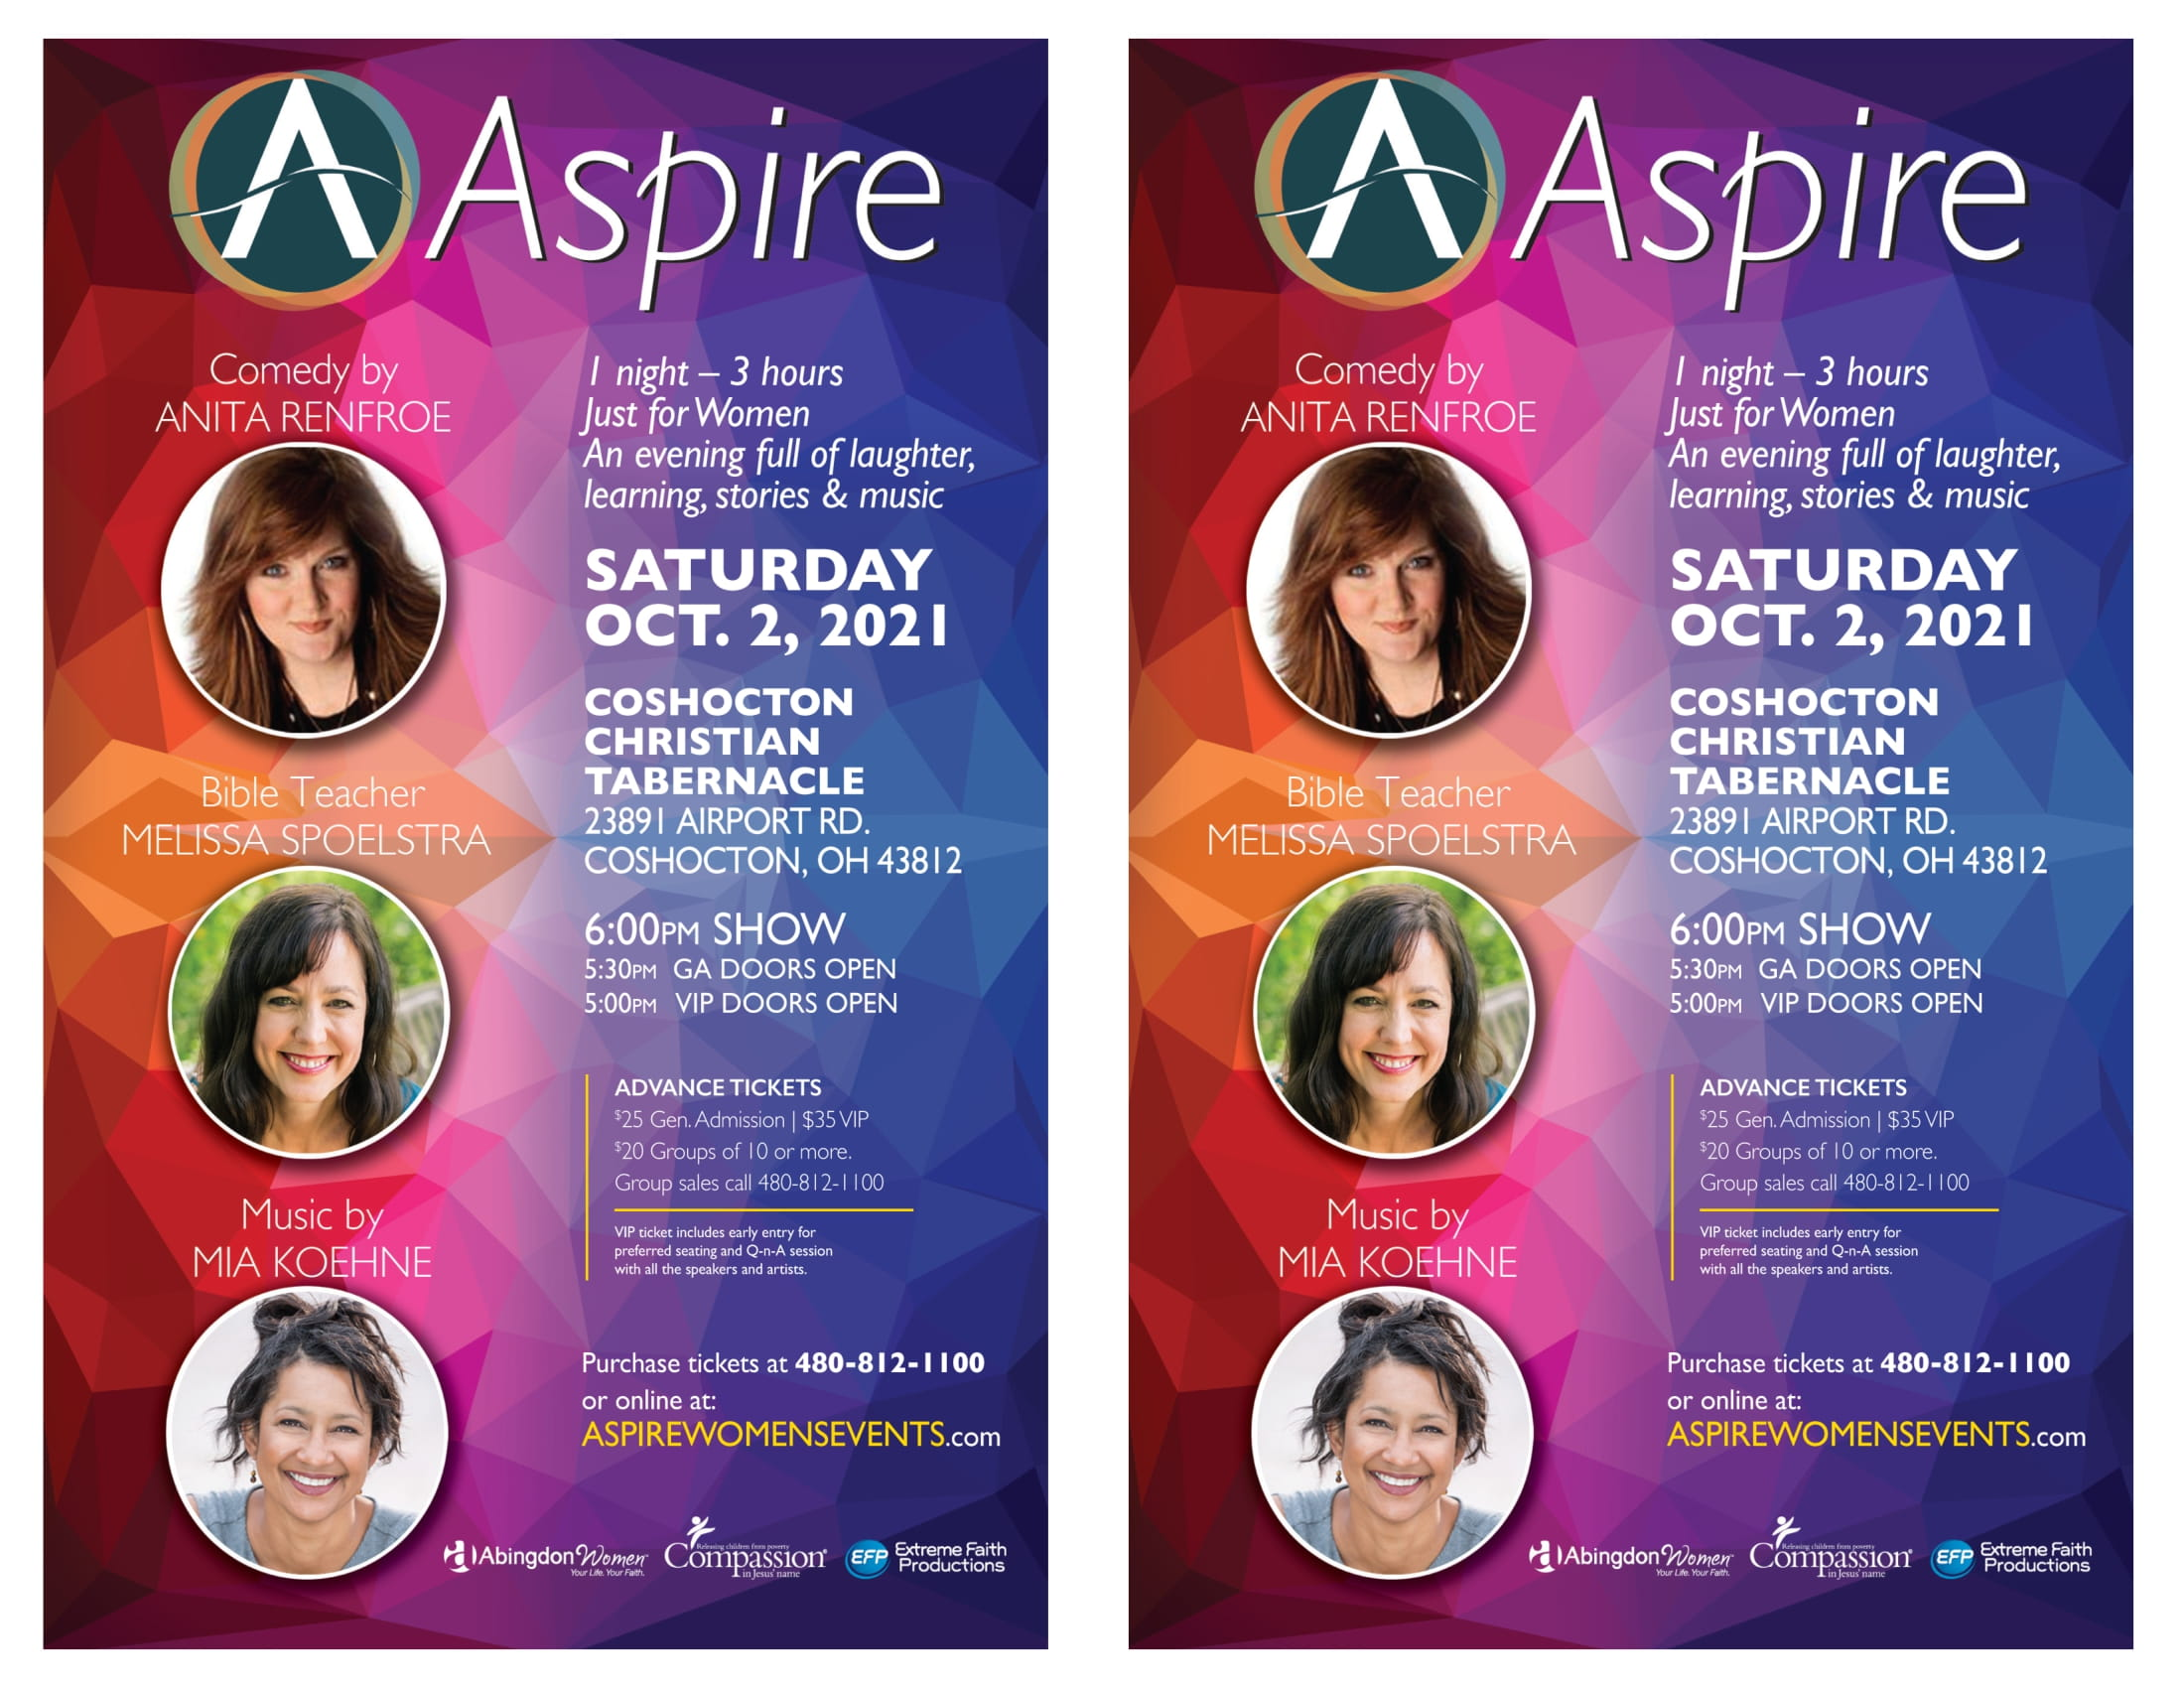 ASPIRE SAT Oct 2 Coshocton OH-2UP-1